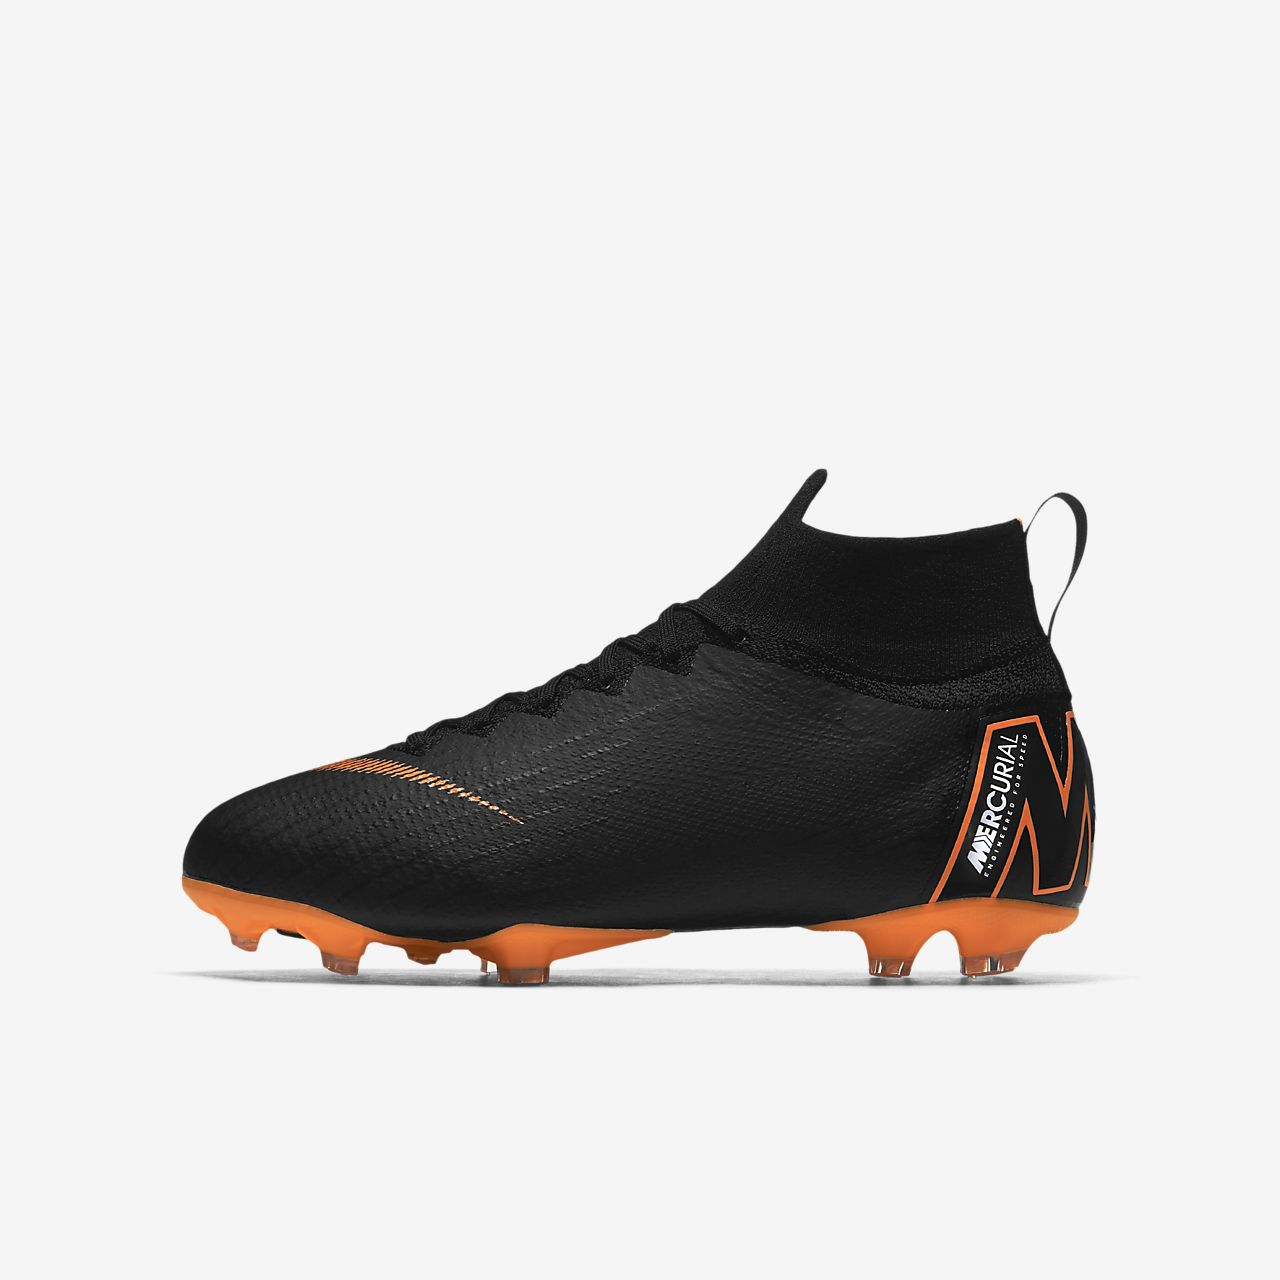 purchase cheap 564f6 dc411 ... wholesale nike jr. mercurial superfly 360 elite older kids firm ground  football boot 6a270 42ab1